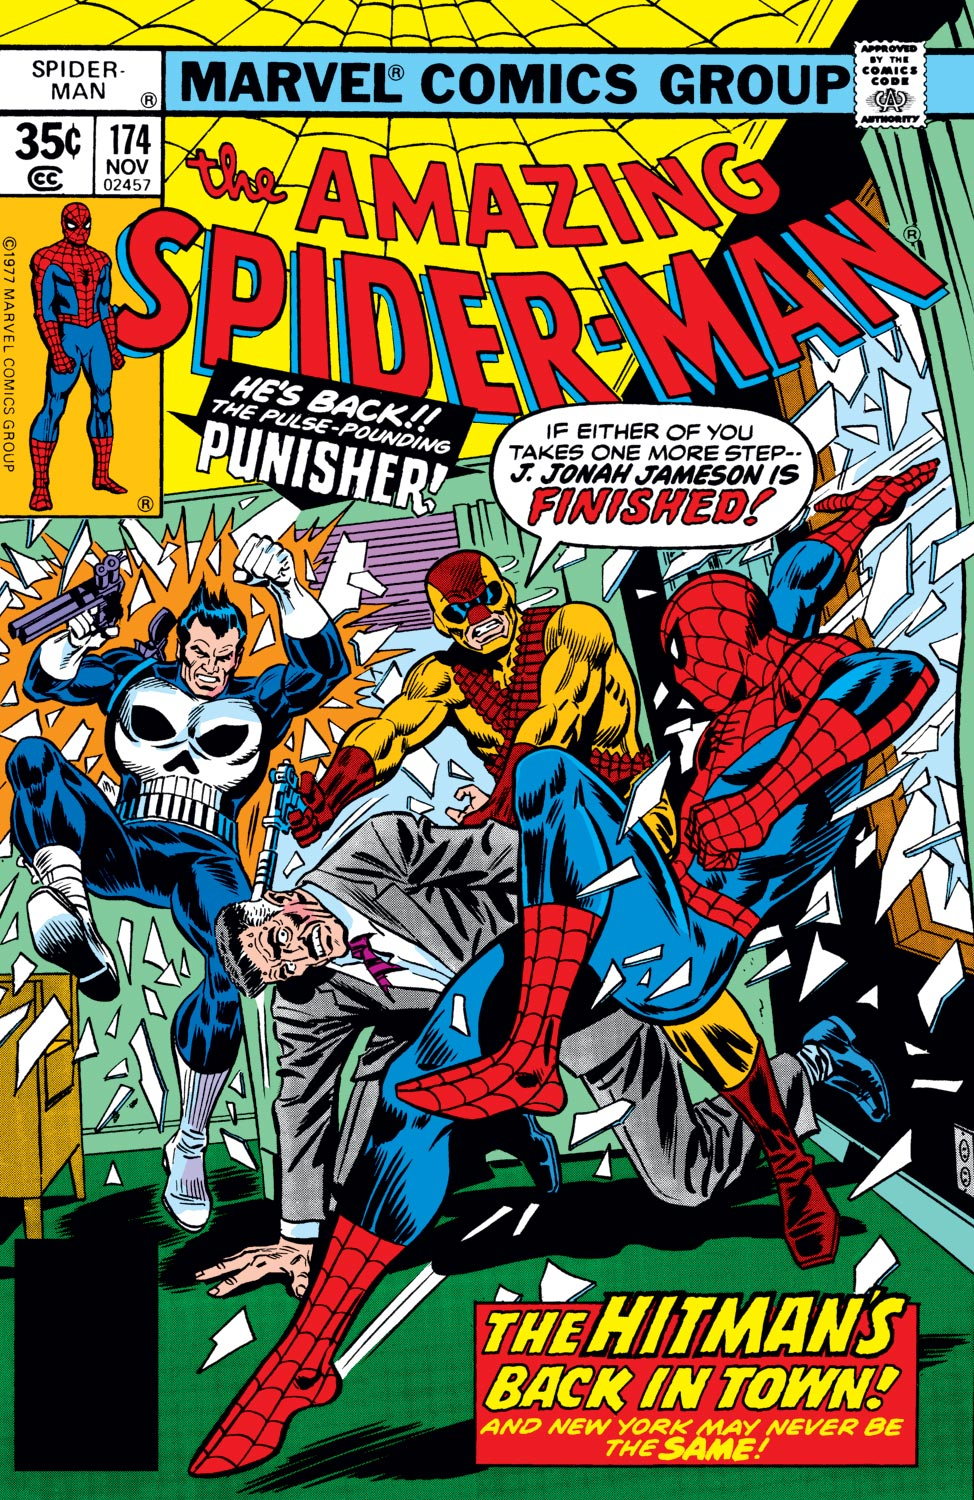 The Amazing Spider-Man (1963) #174